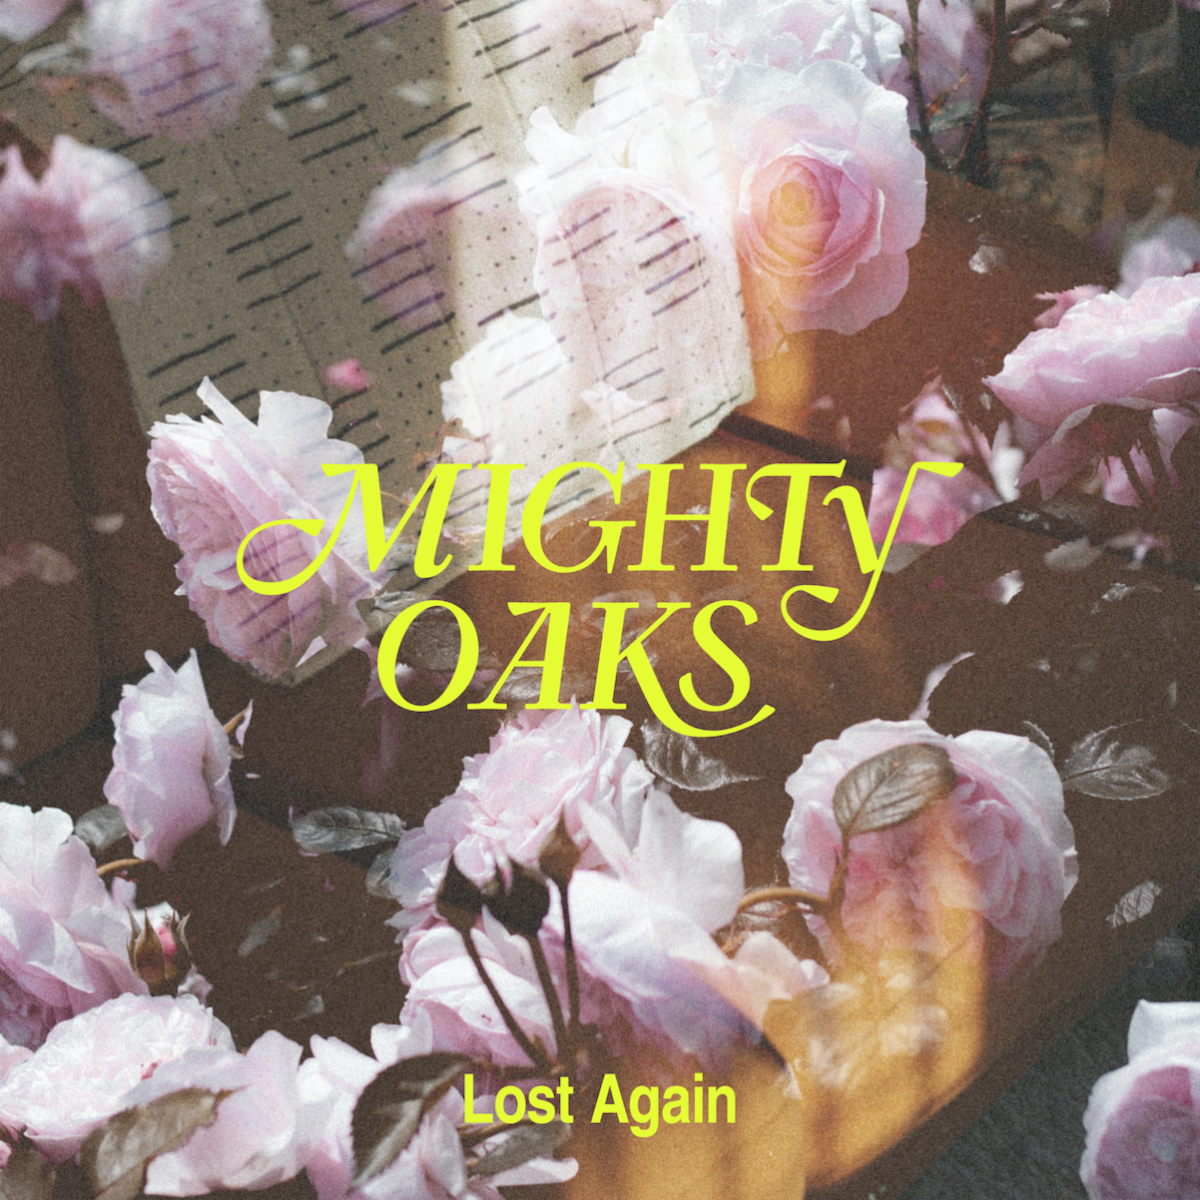 """""""Lost Again"""" by Mighty Oaks, is Northern Transmissions' 'Song of the Day'"""